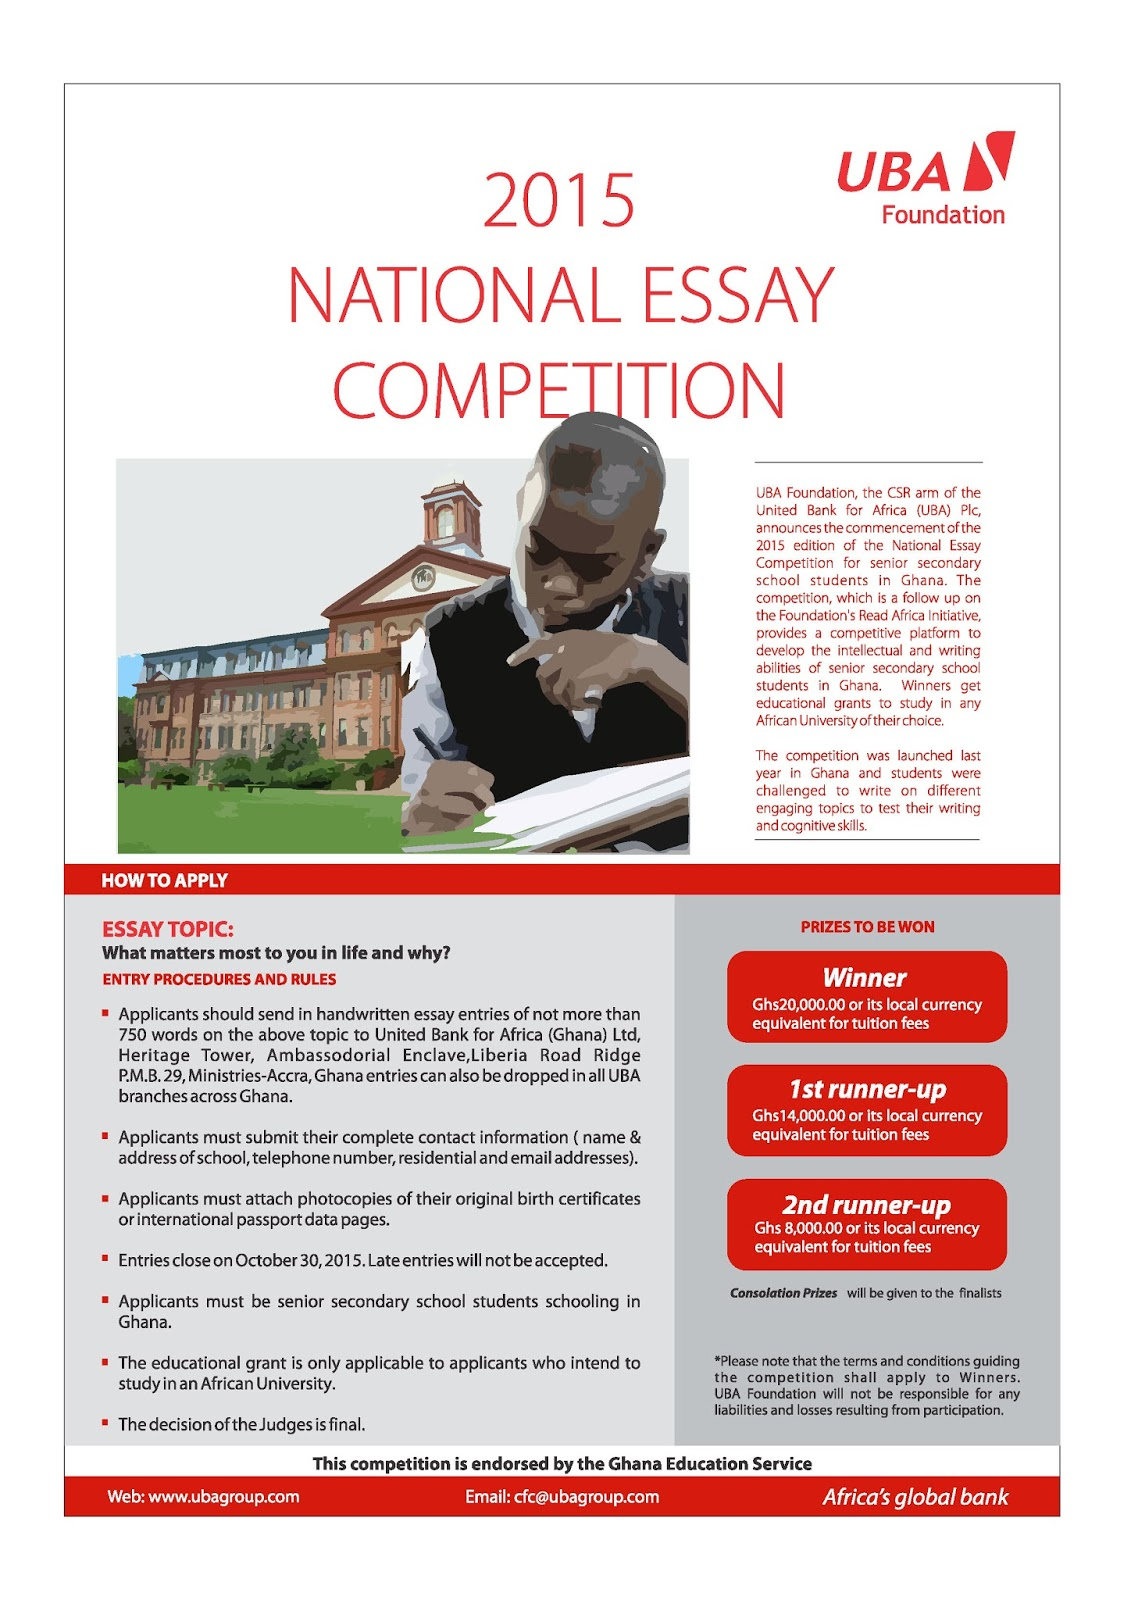 students submit entries for uba foundation essay competition the hand written essays can be sent to any of the uba business offices in any of the three countries where the essay competition is being held